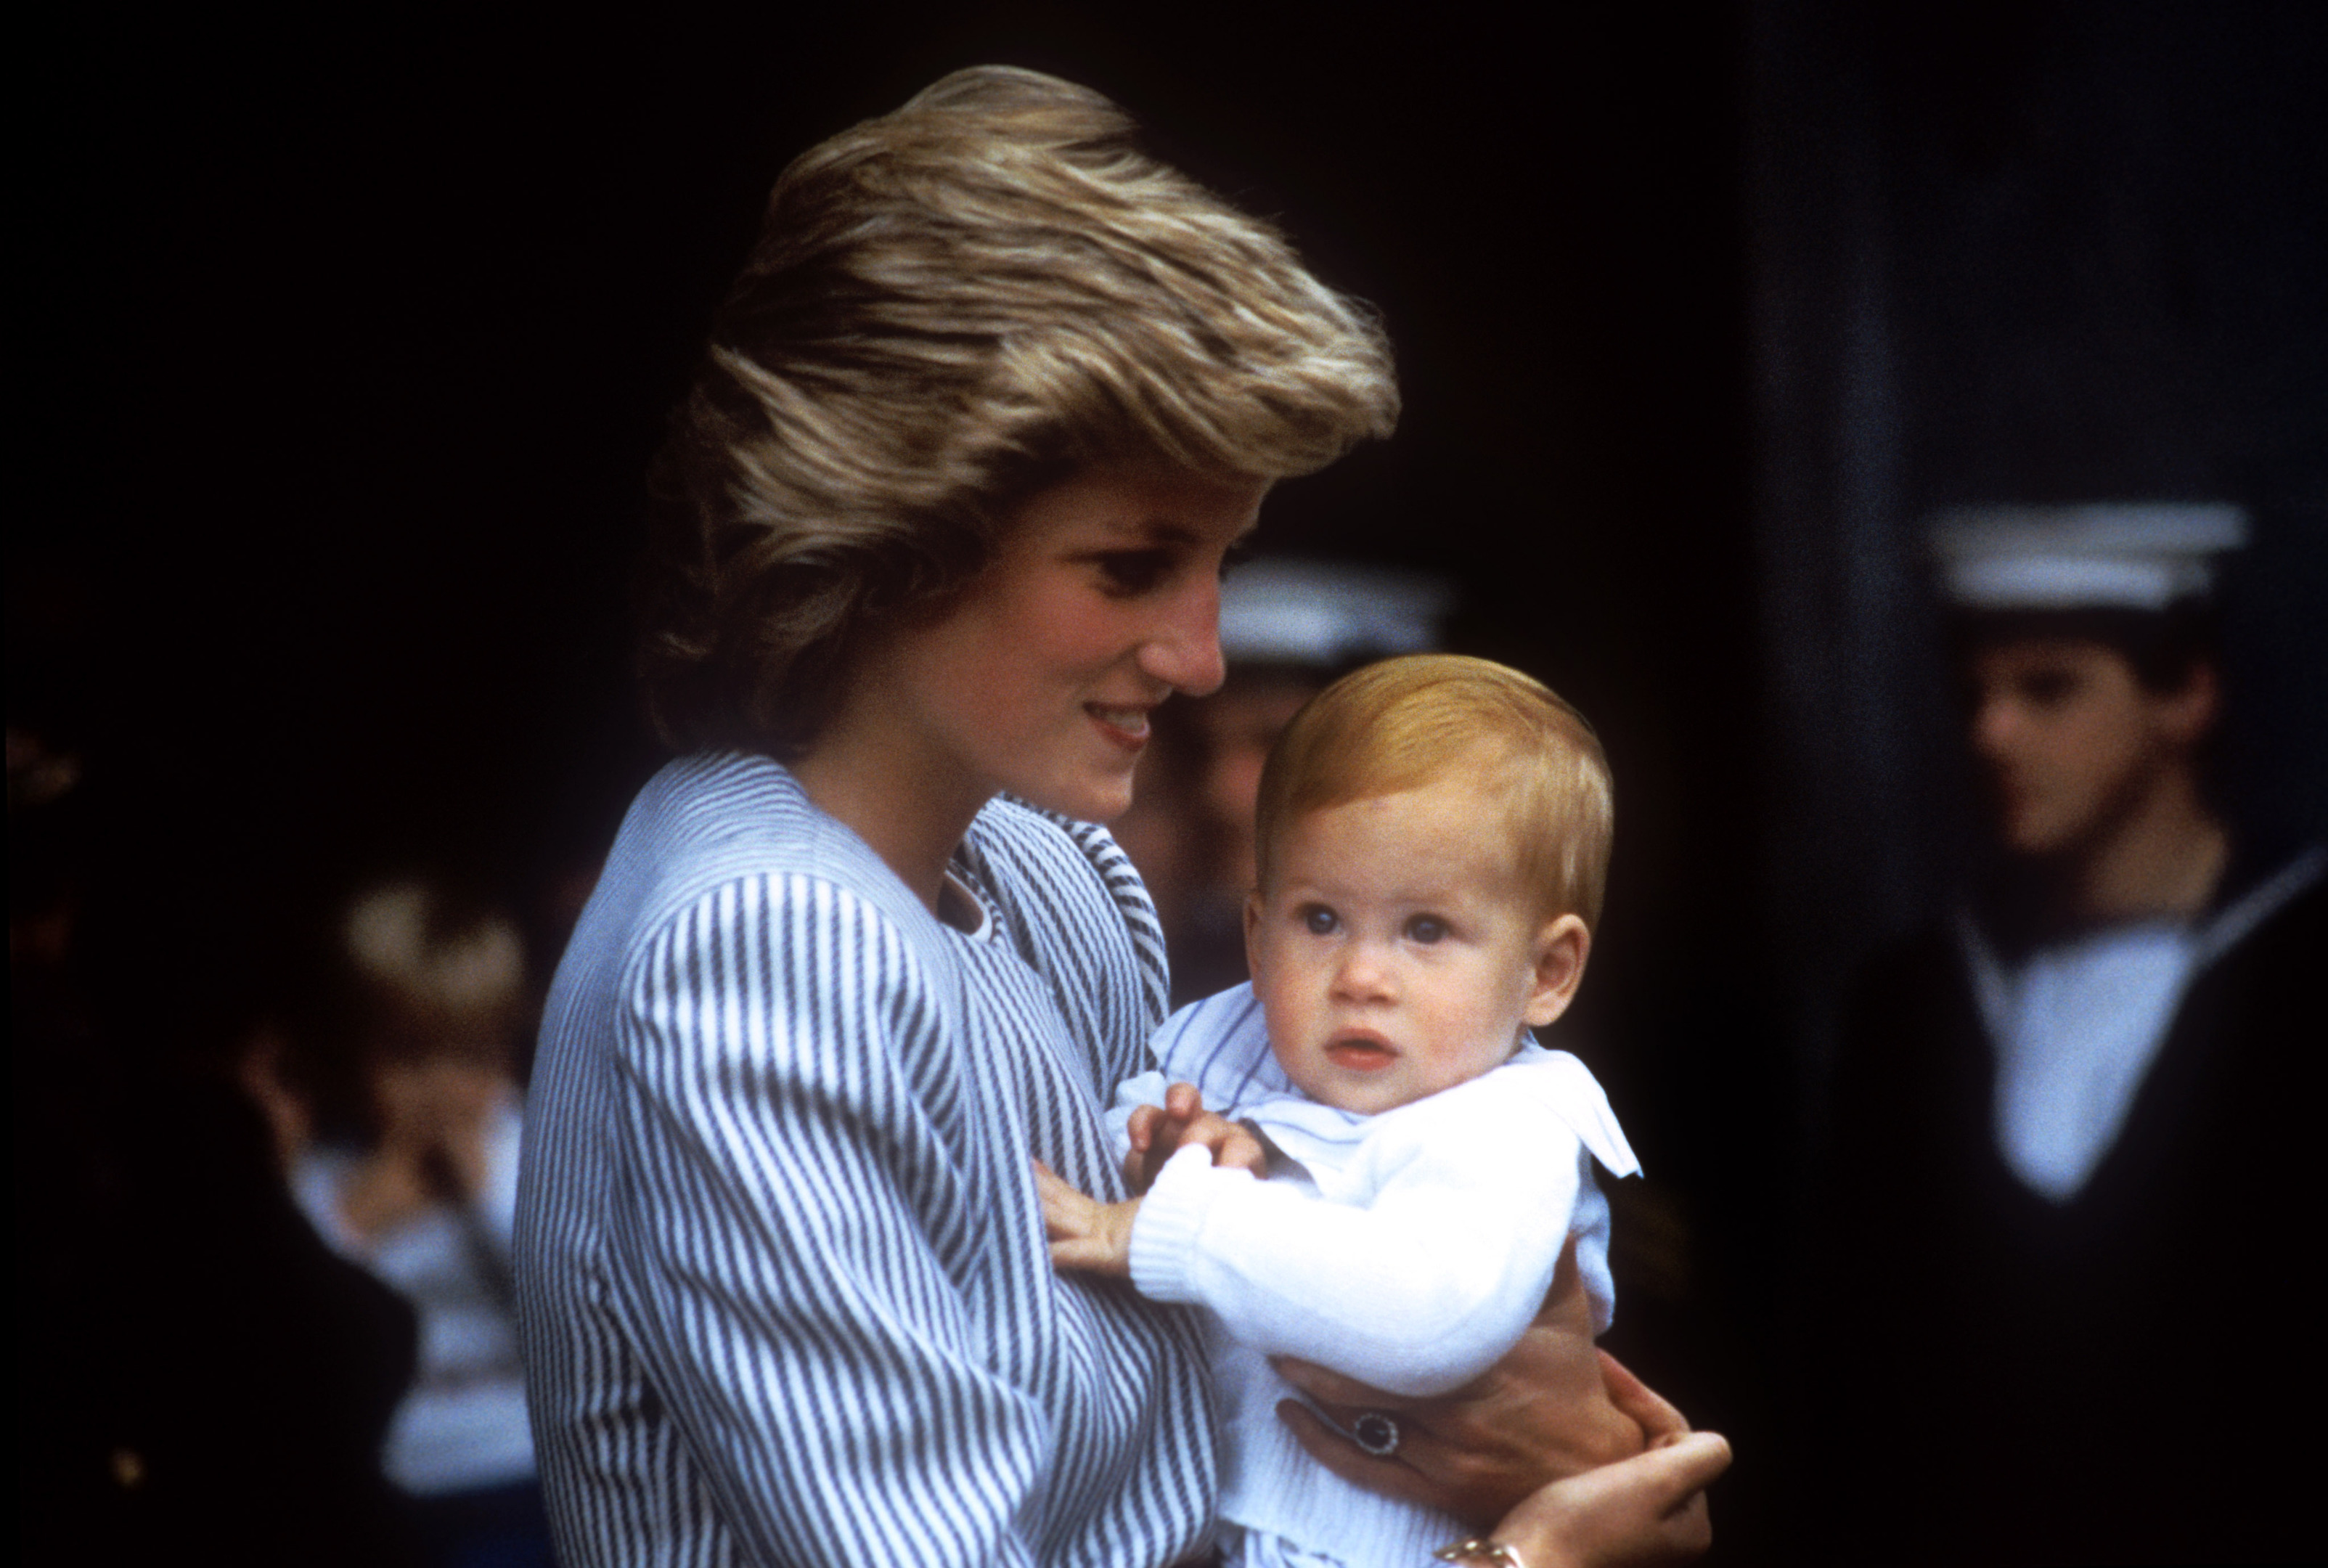 Baby Harry with his mother, Diana, the Princess of Wales, whose life would be tragically cut short in a car accident in Paris in 1997 (PA)